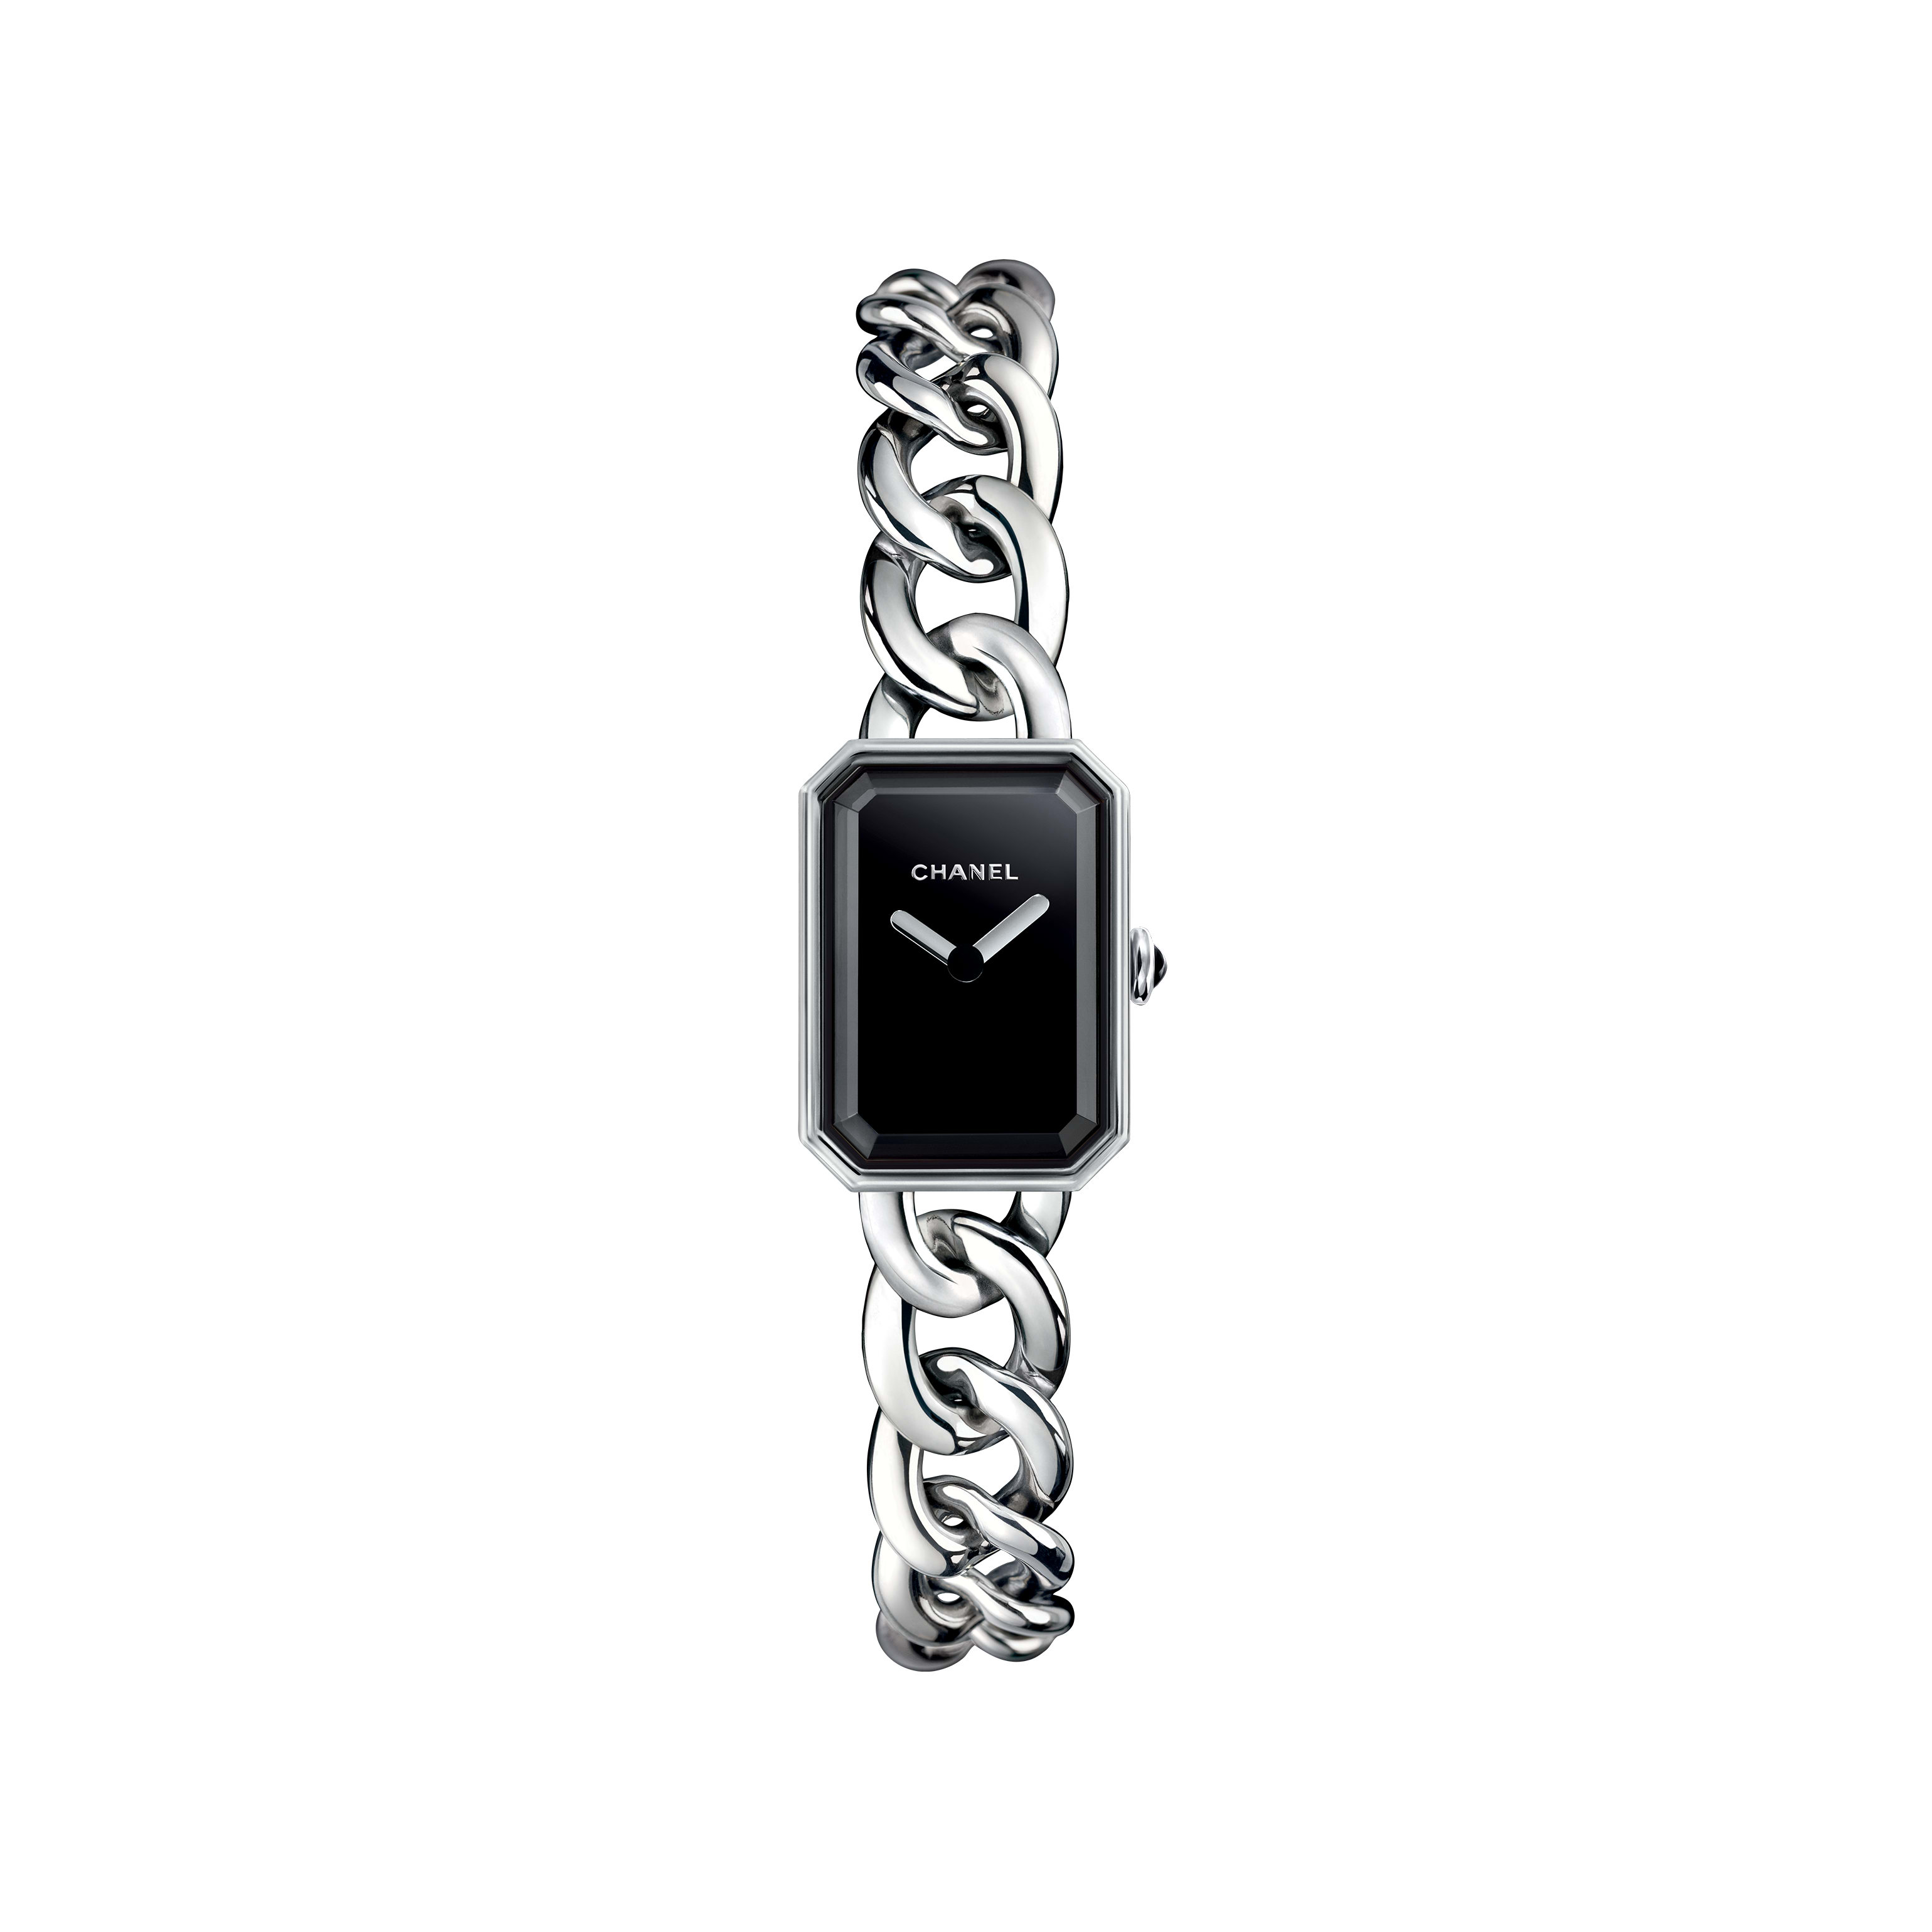 Première Chaîne - Small version, steel, black dial - CHANEL - Default view - see standard sized version